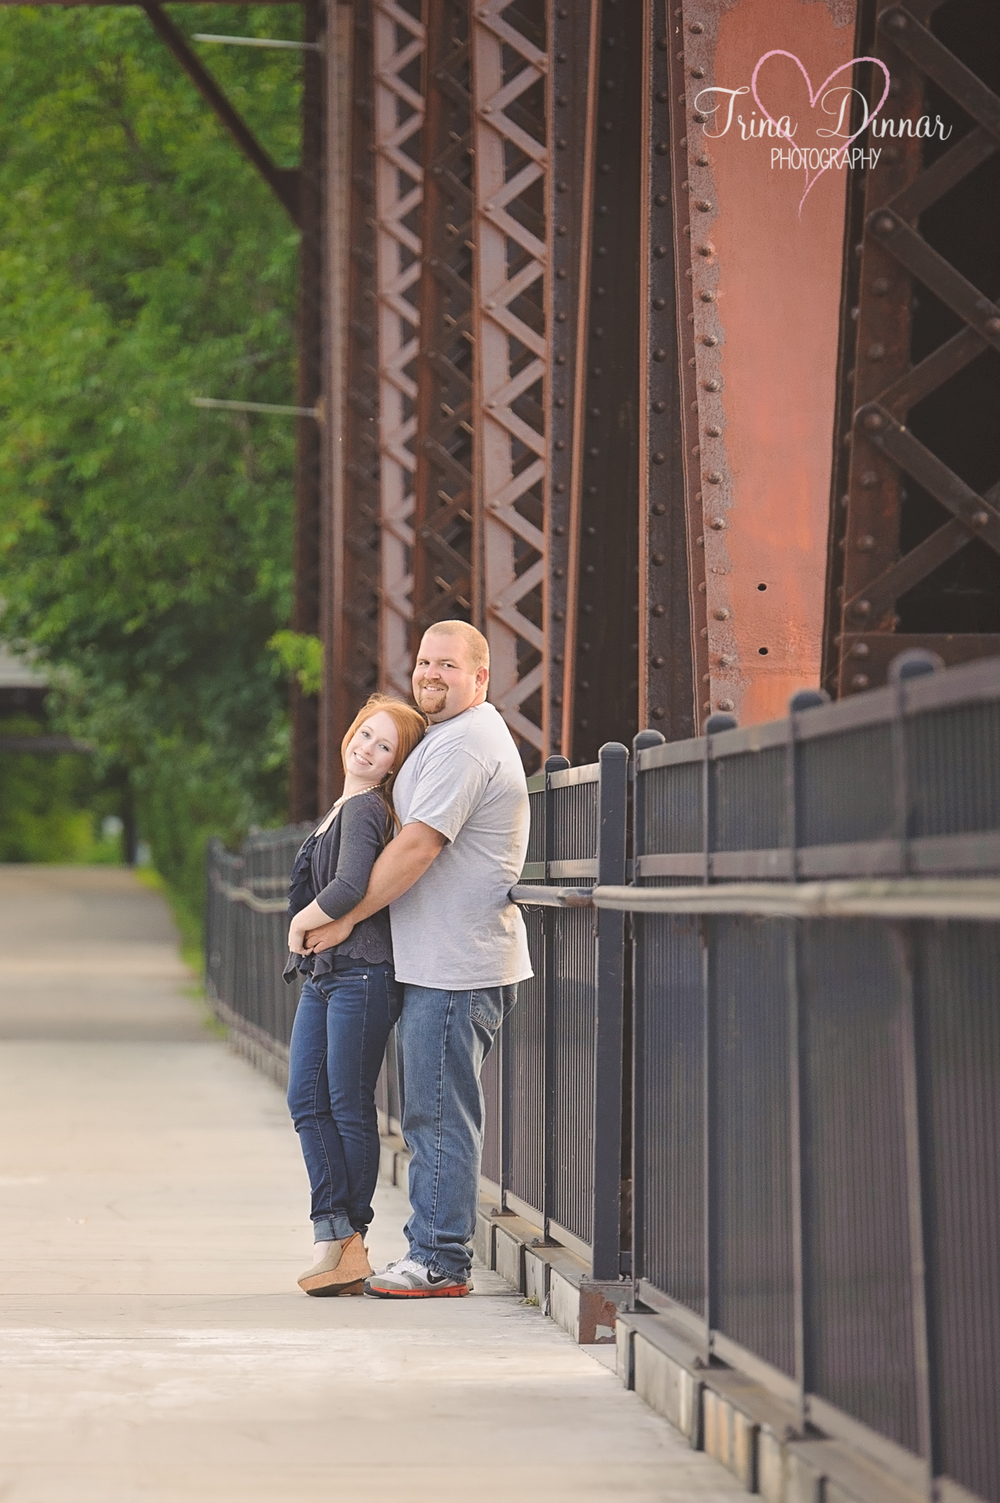 Jessica and Kyle's Engagement Photography session in Lewiston, Maine